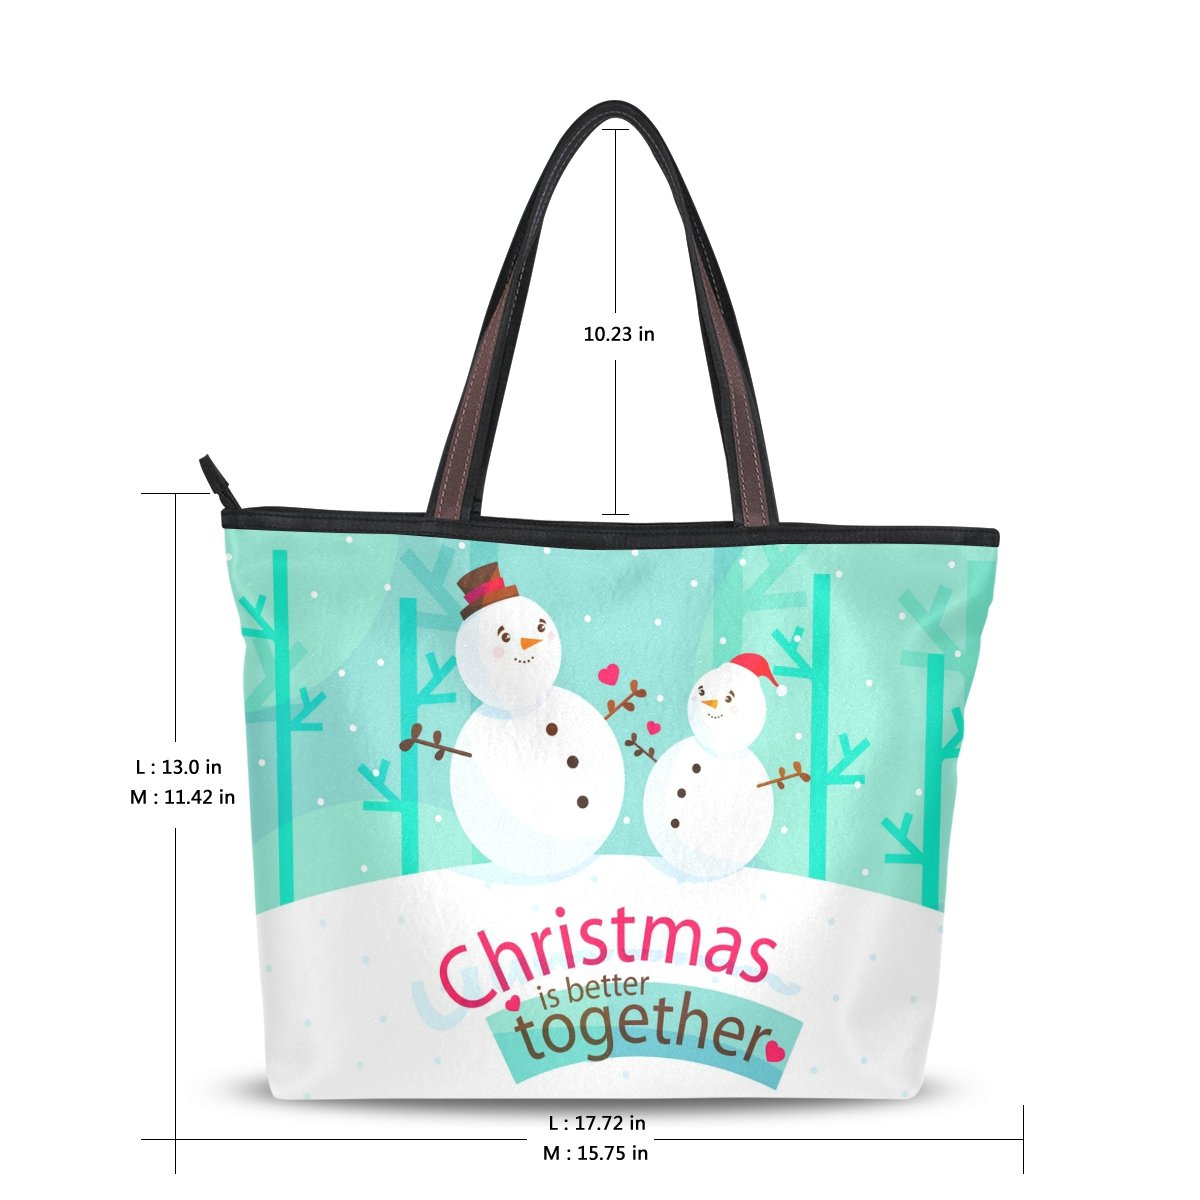 ae7654d87b4 Women s Designer Handbags Fashion Big Canvas Washable Tote Bags Shoulder Bag  Top-handle Bag with Christmas Better Together Snowman Pattern for Shopping  ...